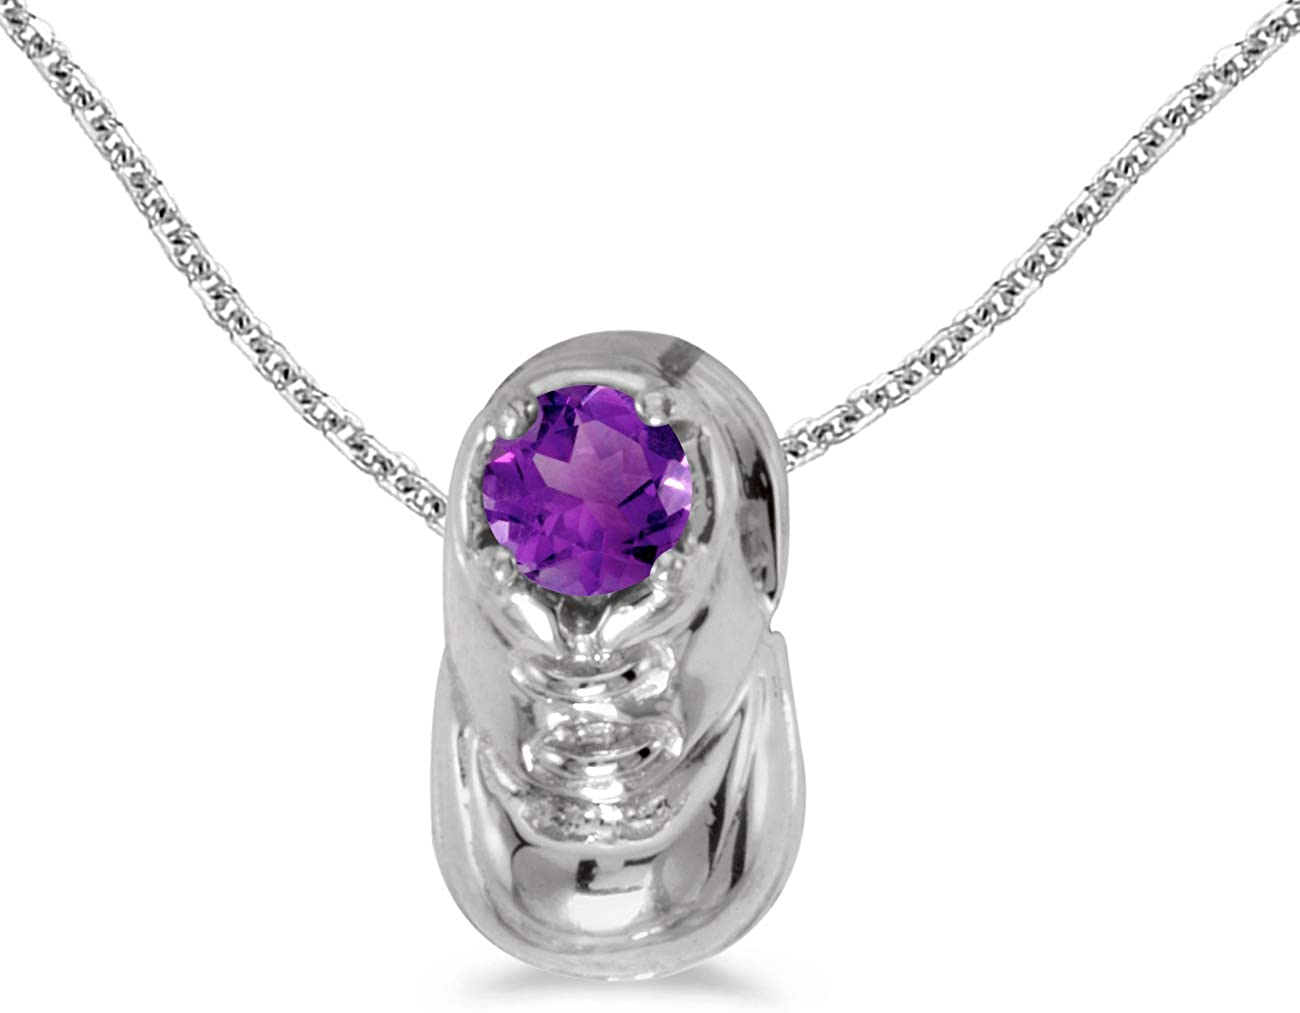 10k White Gold Round Amethyst Baby Bootie Pendant with 18 Chain